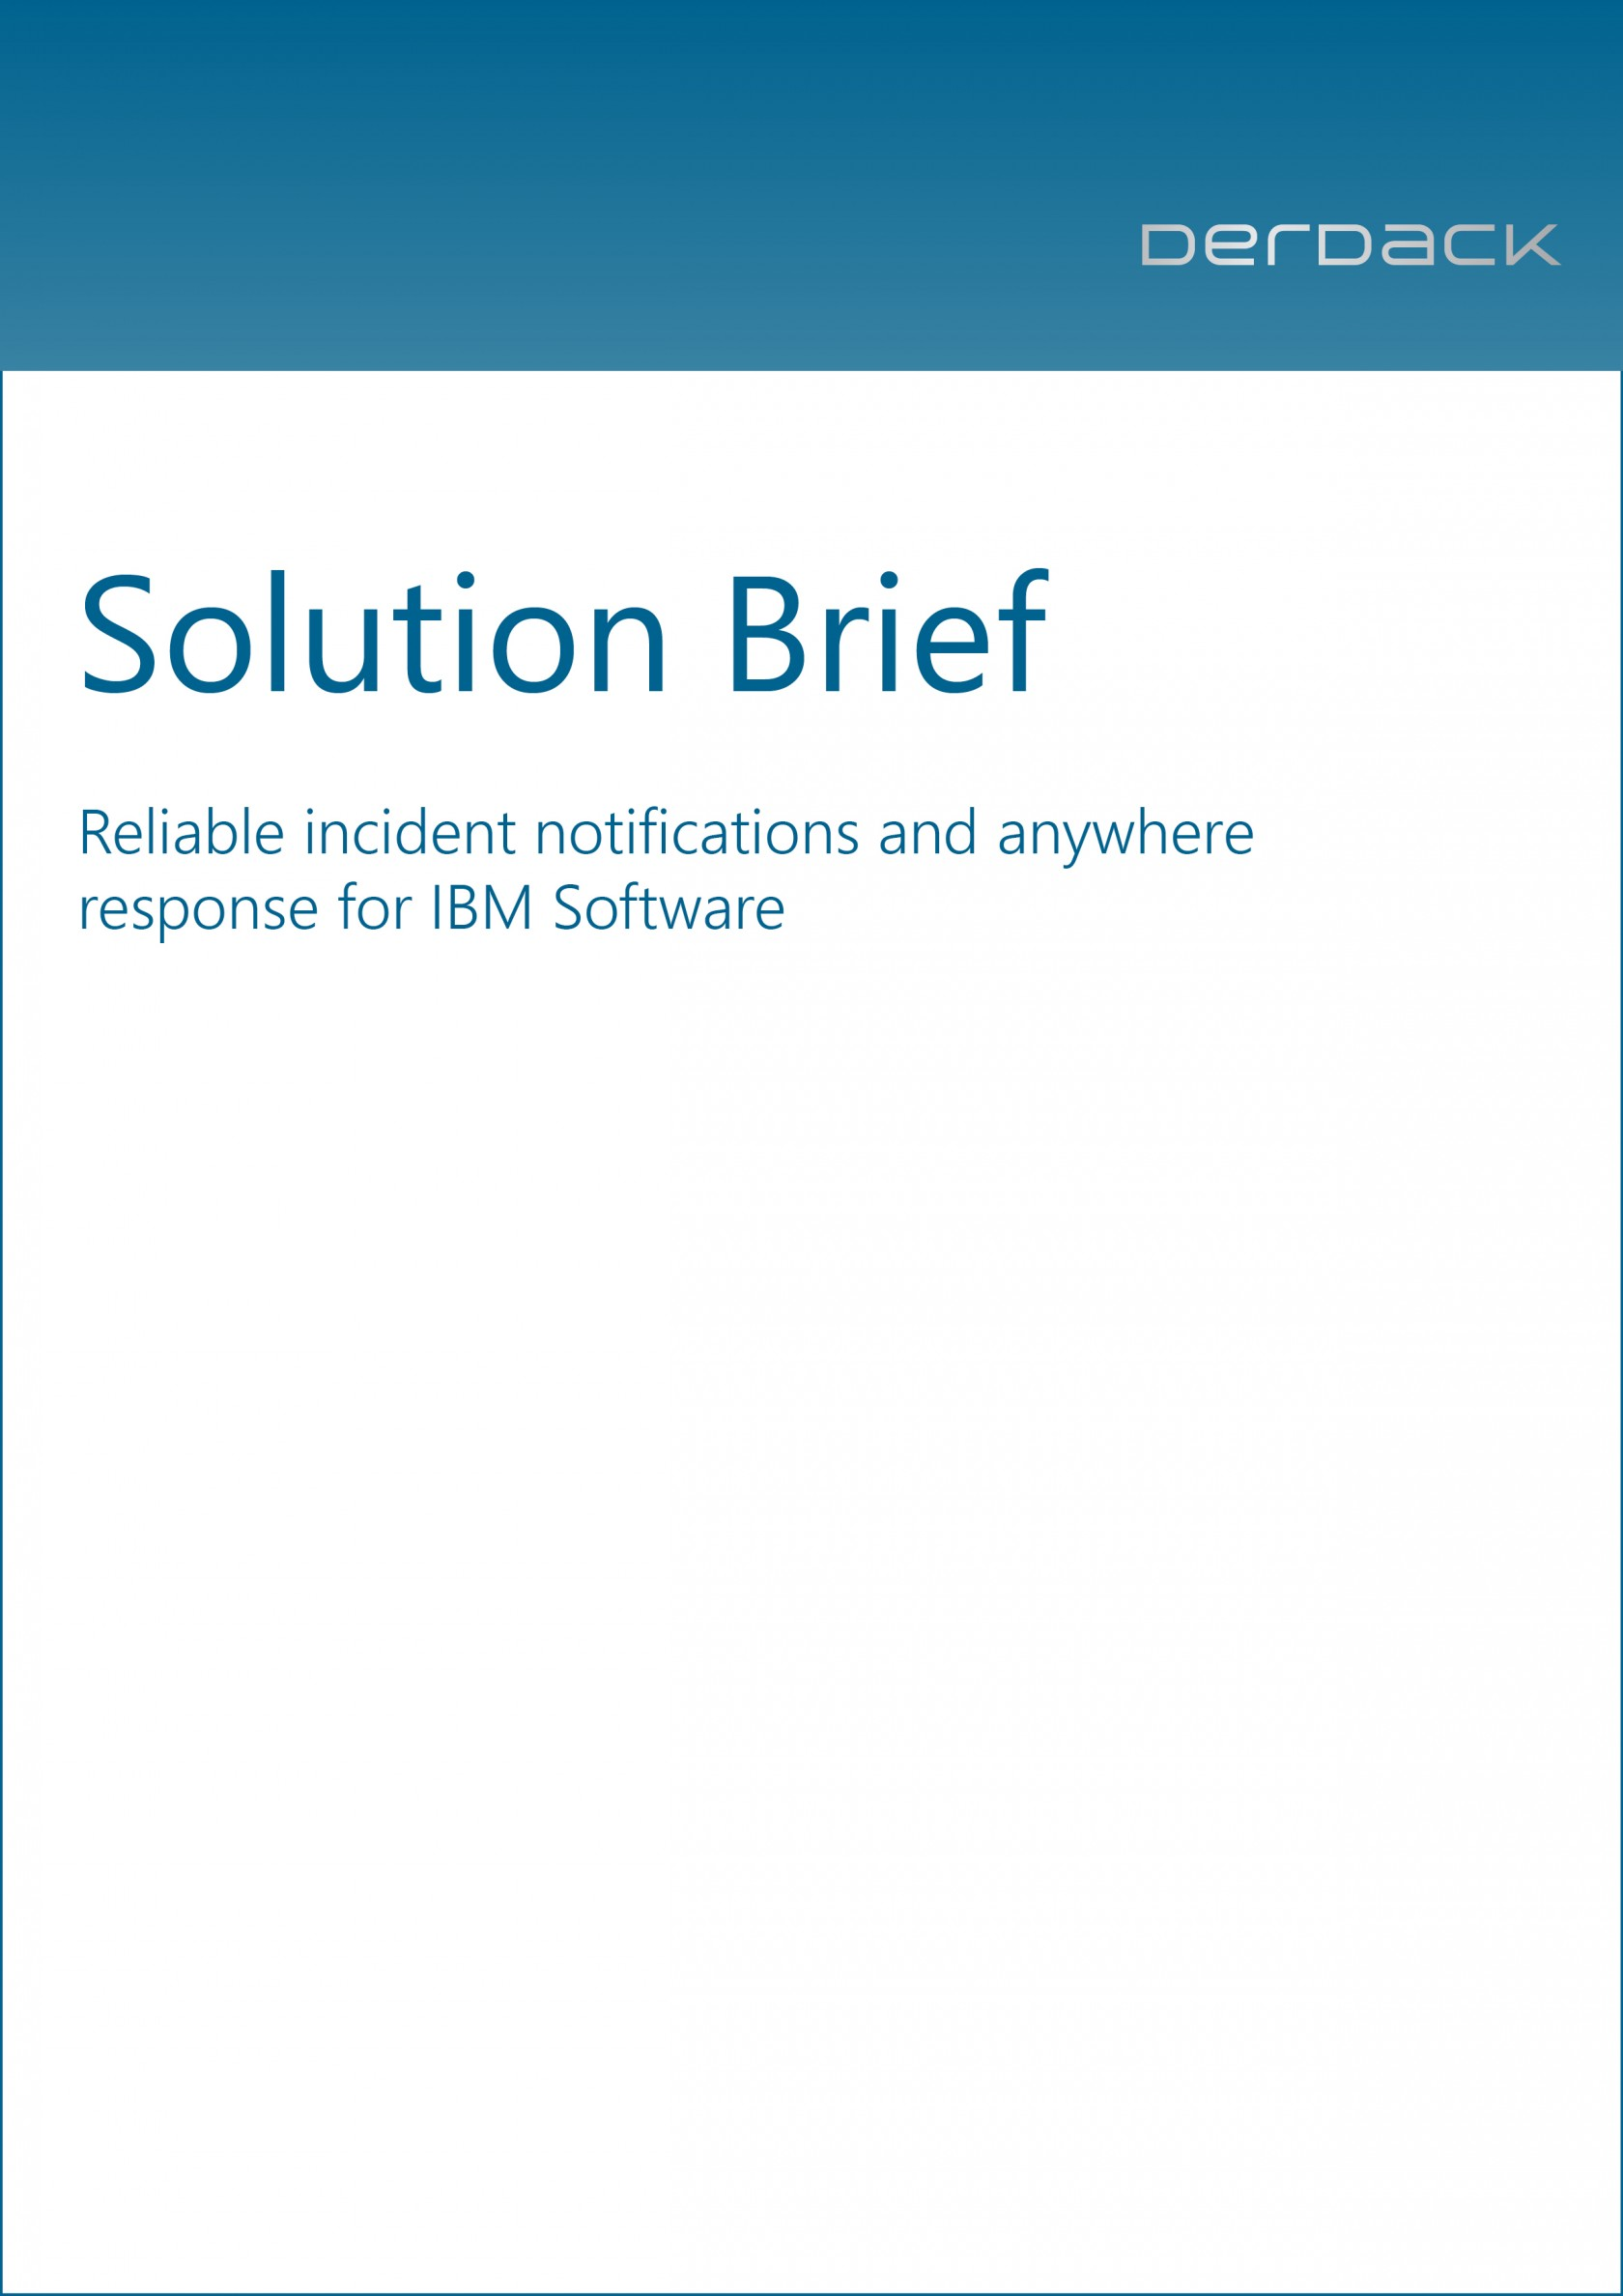 Solution Brief - IBM Tivoli Products